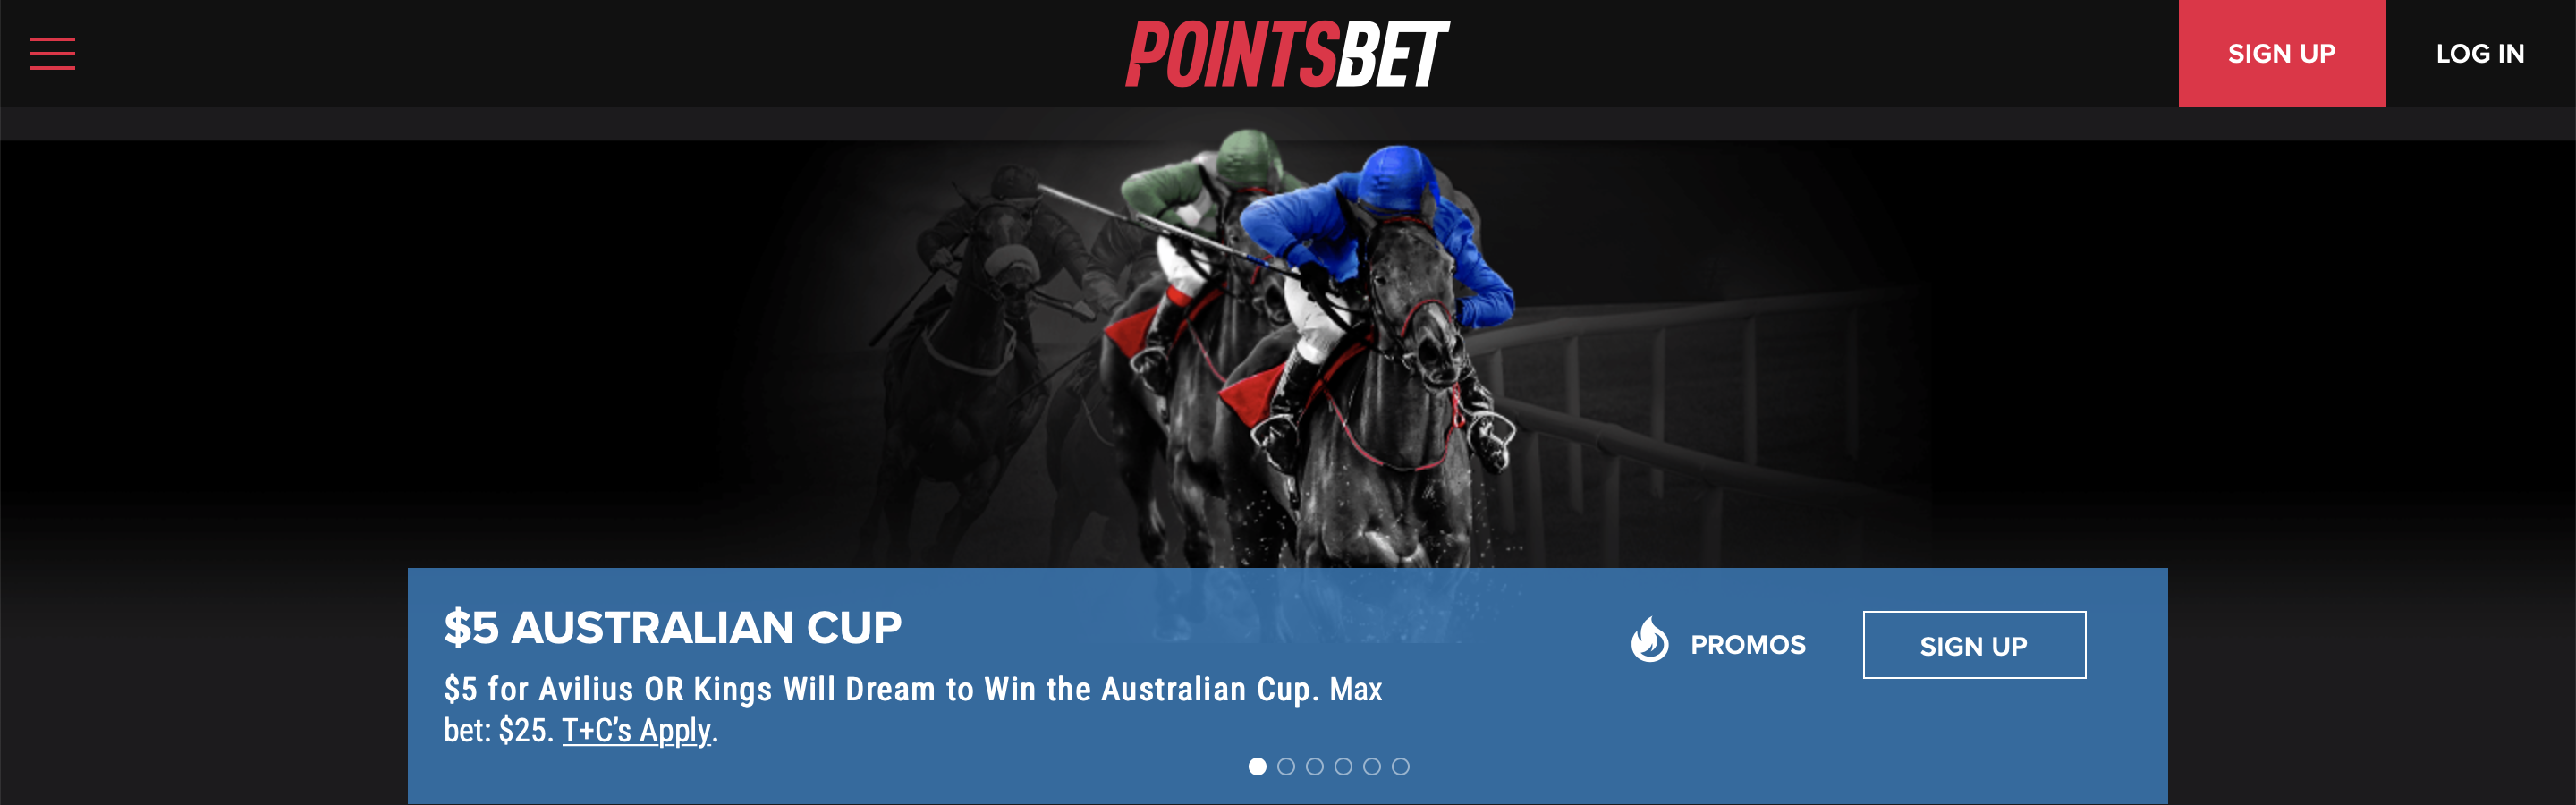 Pointsbet Homepage Interface